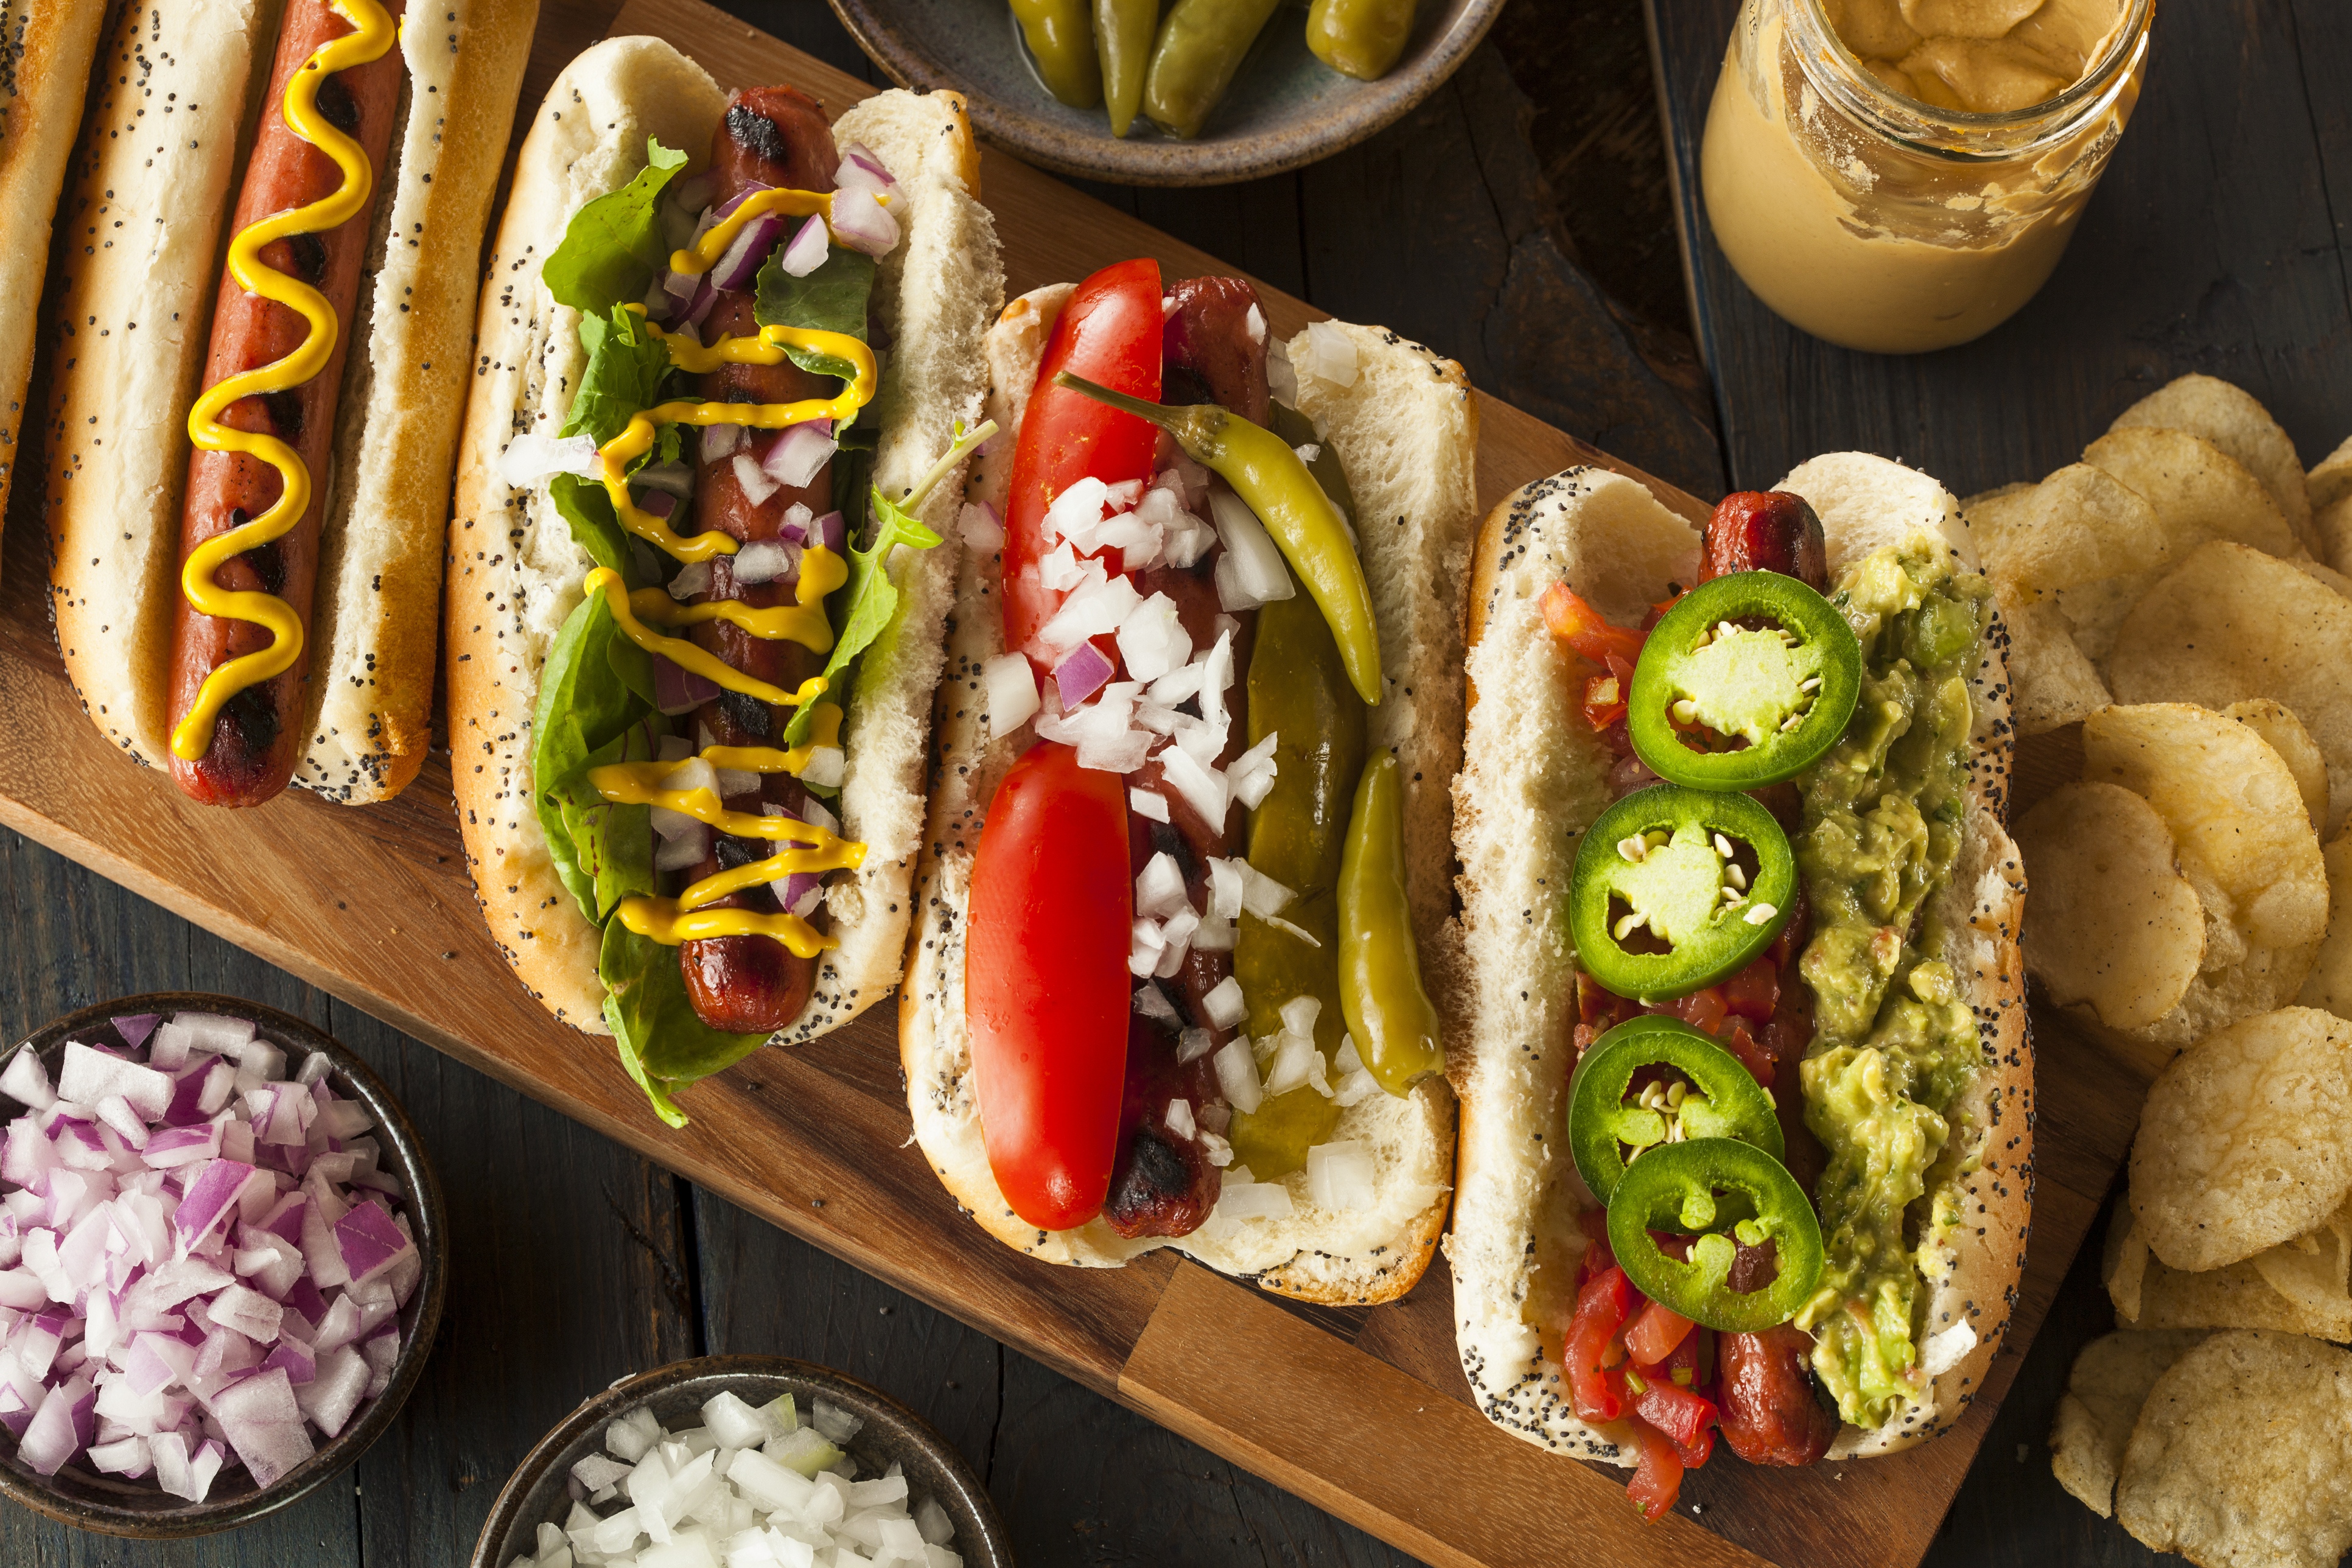 #MakeItGAP for National Hot Dog Month